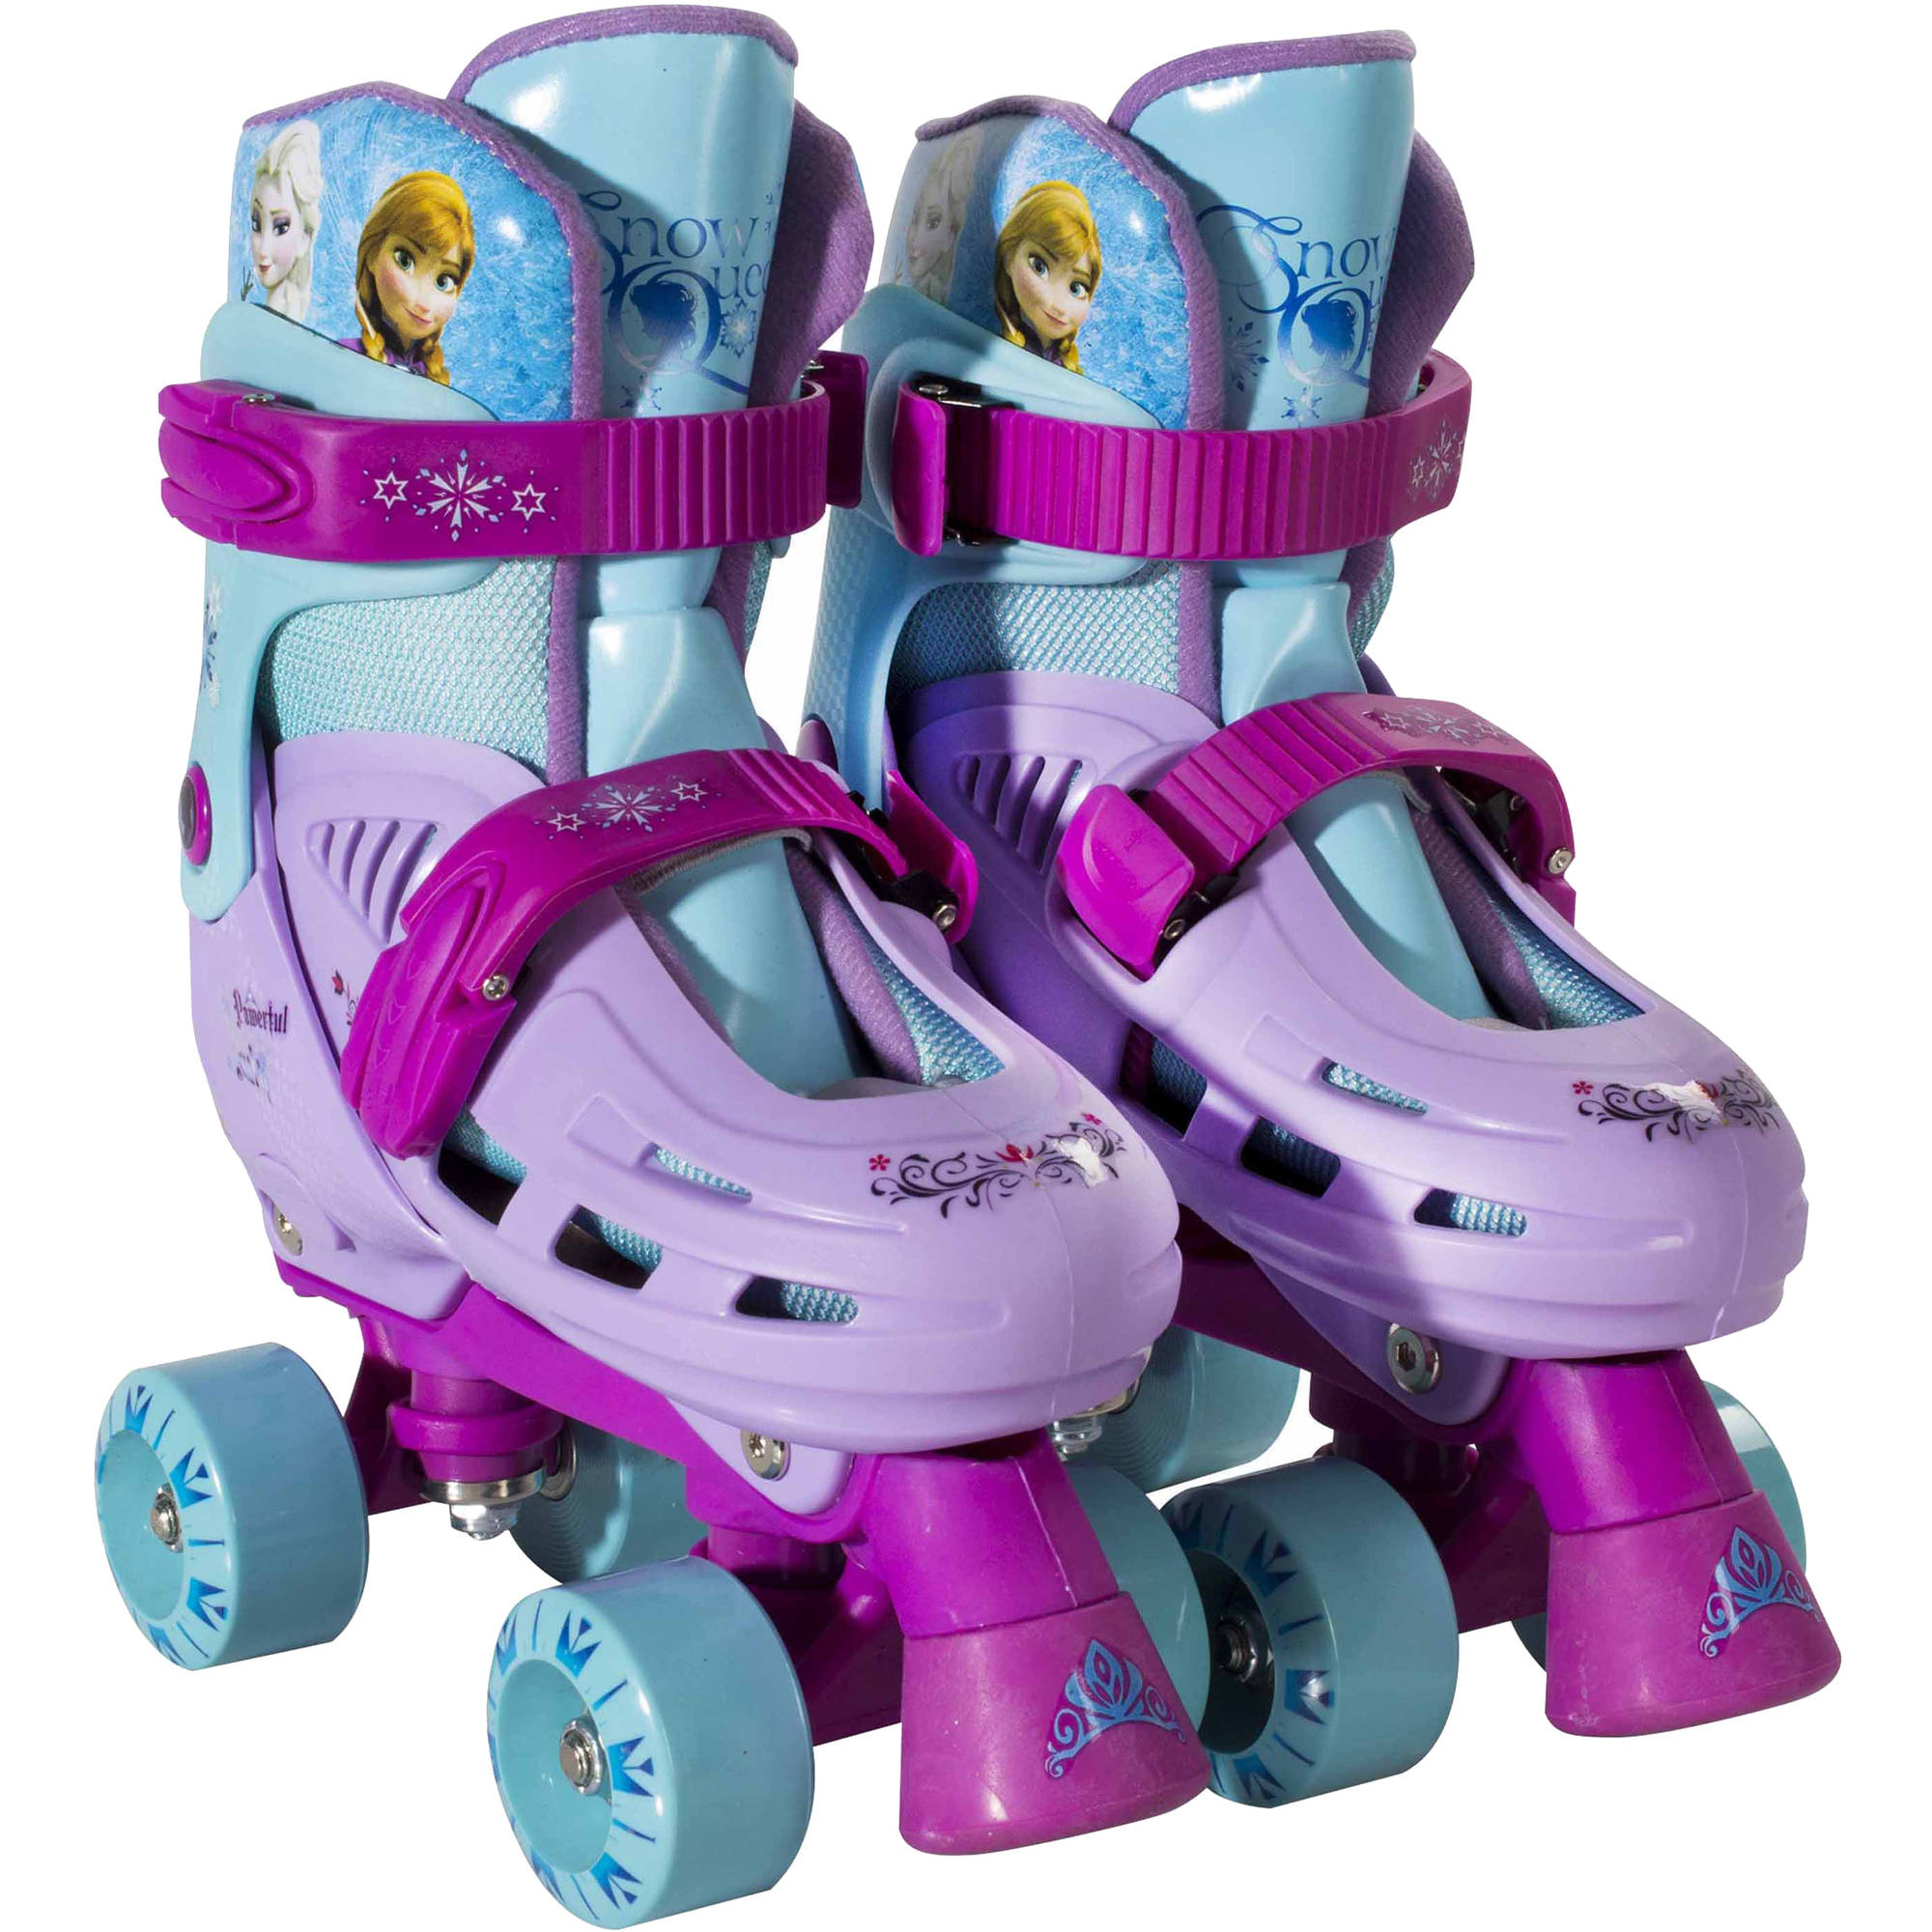 Playwheels Disney Frozen Kids Rollerskate Junior, Size 1-4